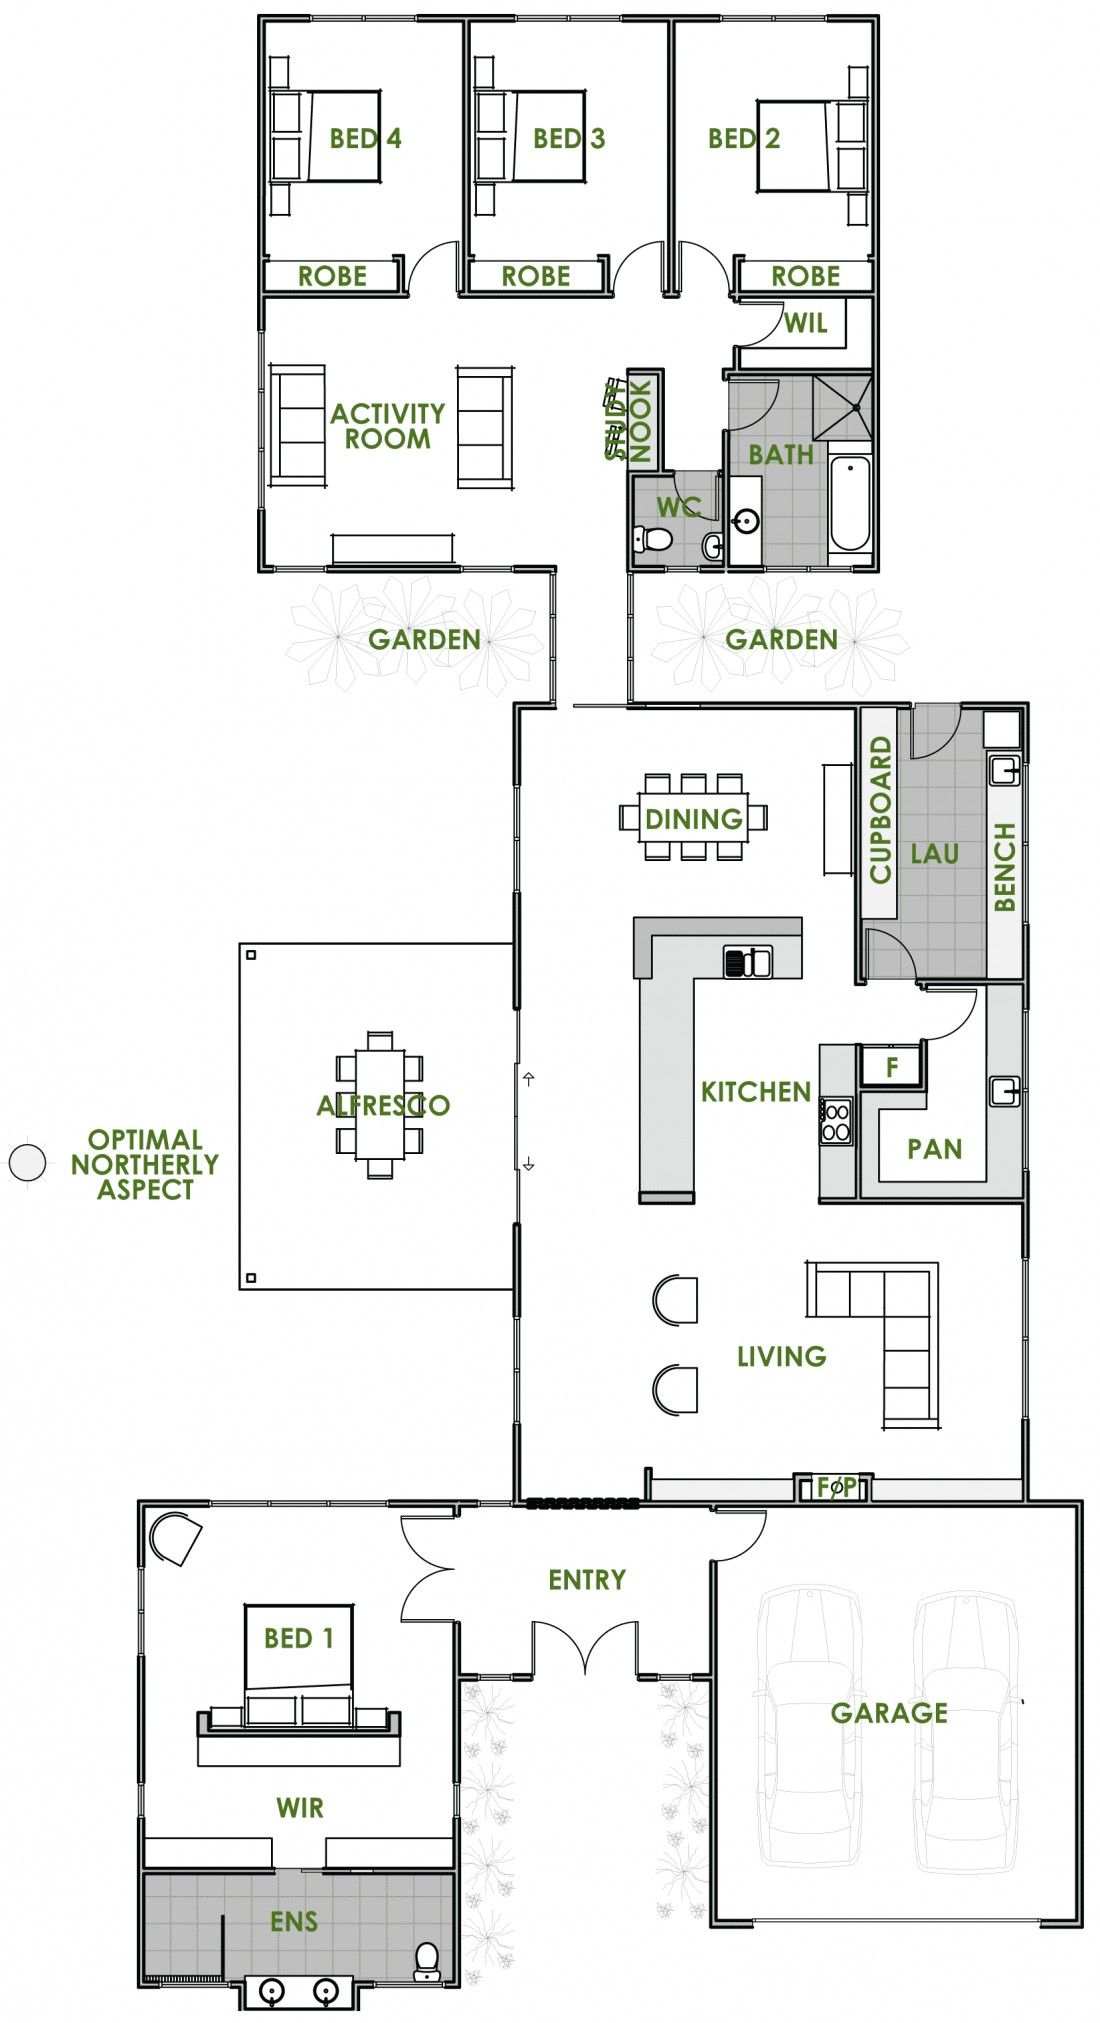 18 Most Efficient House Plans Floor Plan Friday An Energy Efficient Home House Plans Australia Eco House Plans Energy Efficient House Plans